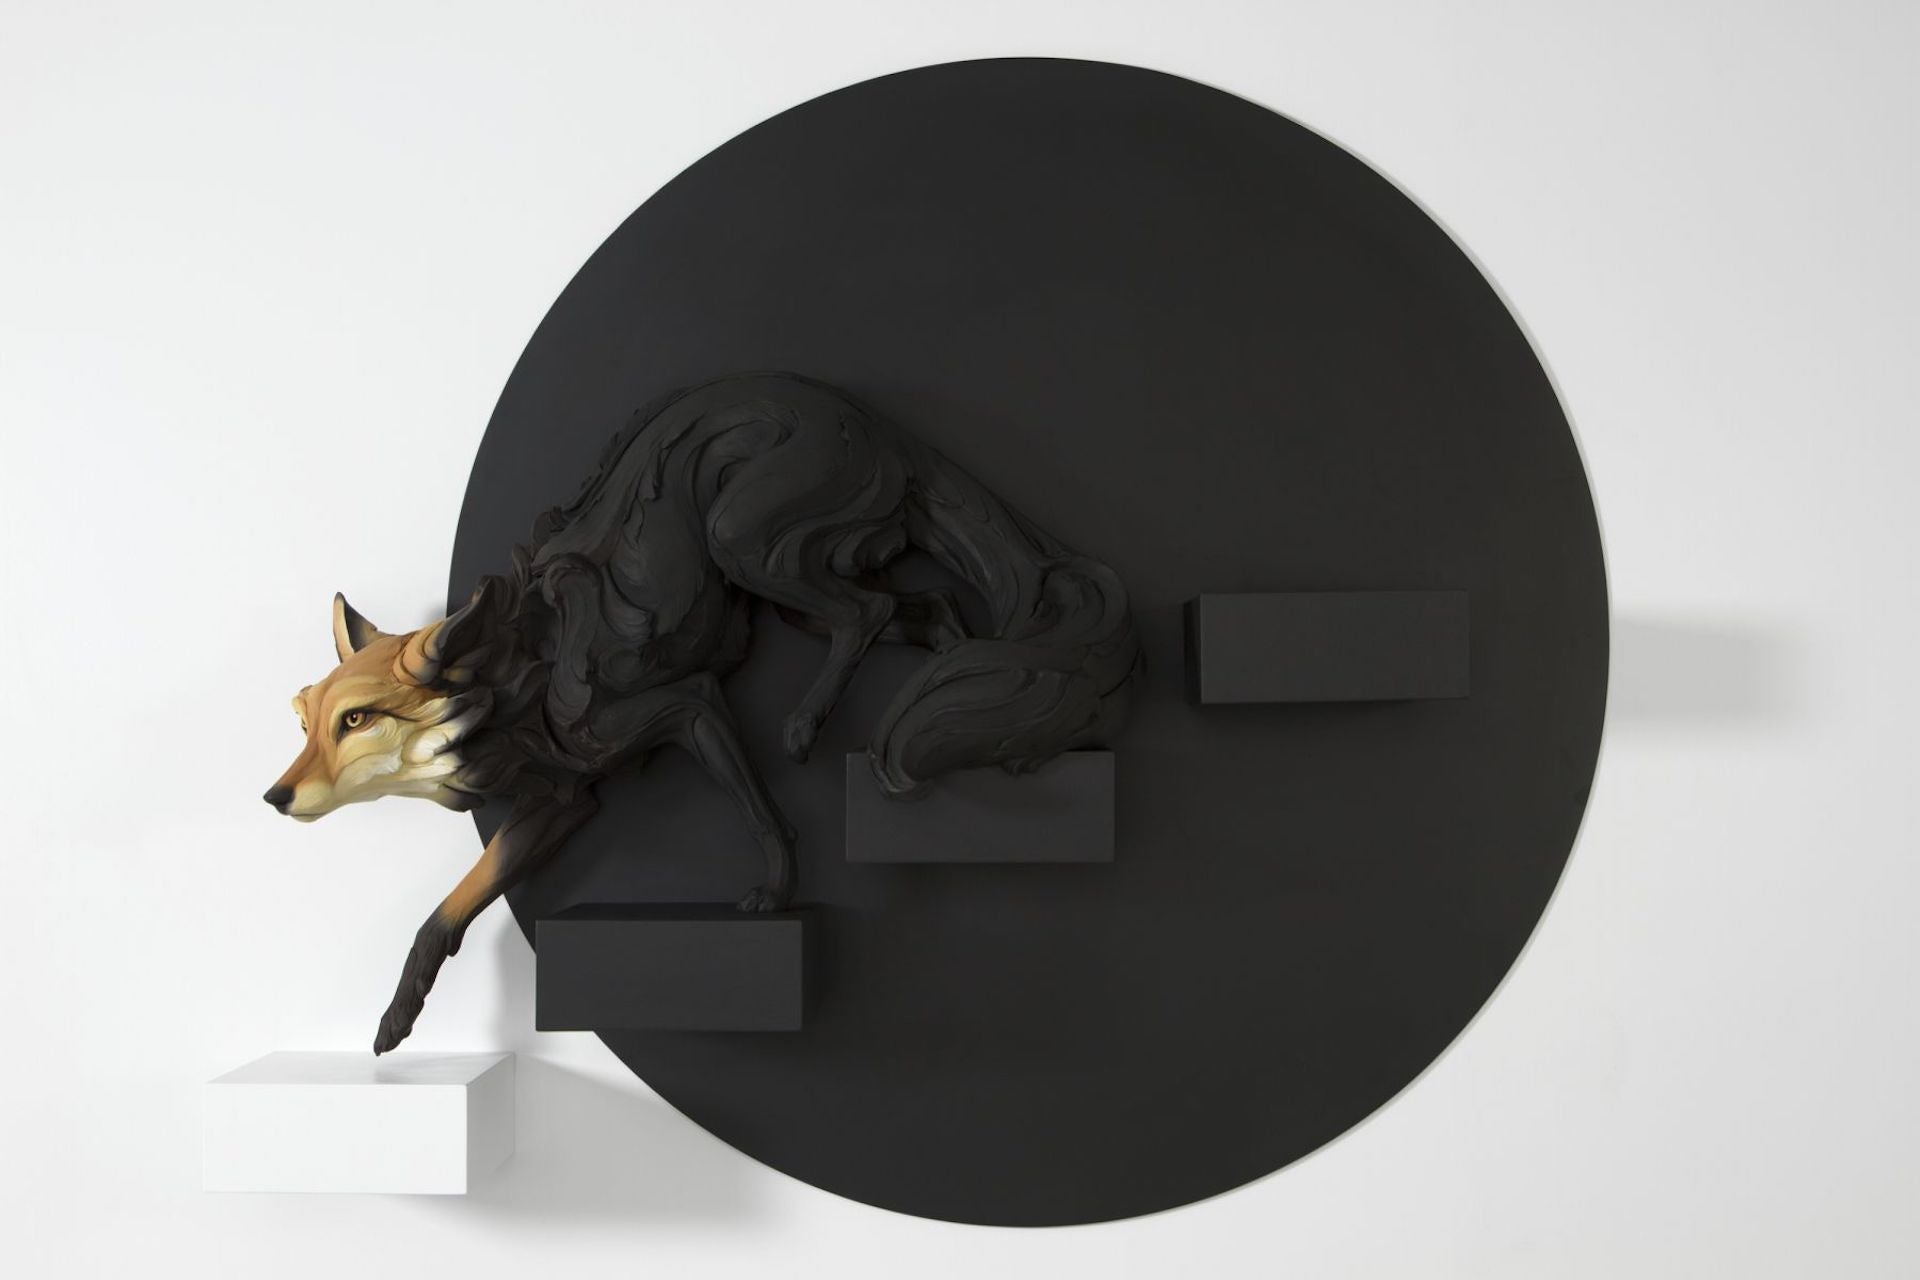 Through an Empty Place (The Fox Emerging from Shadow) by Beth Cavener, 2017. Photo © Jason Jacques Gallery